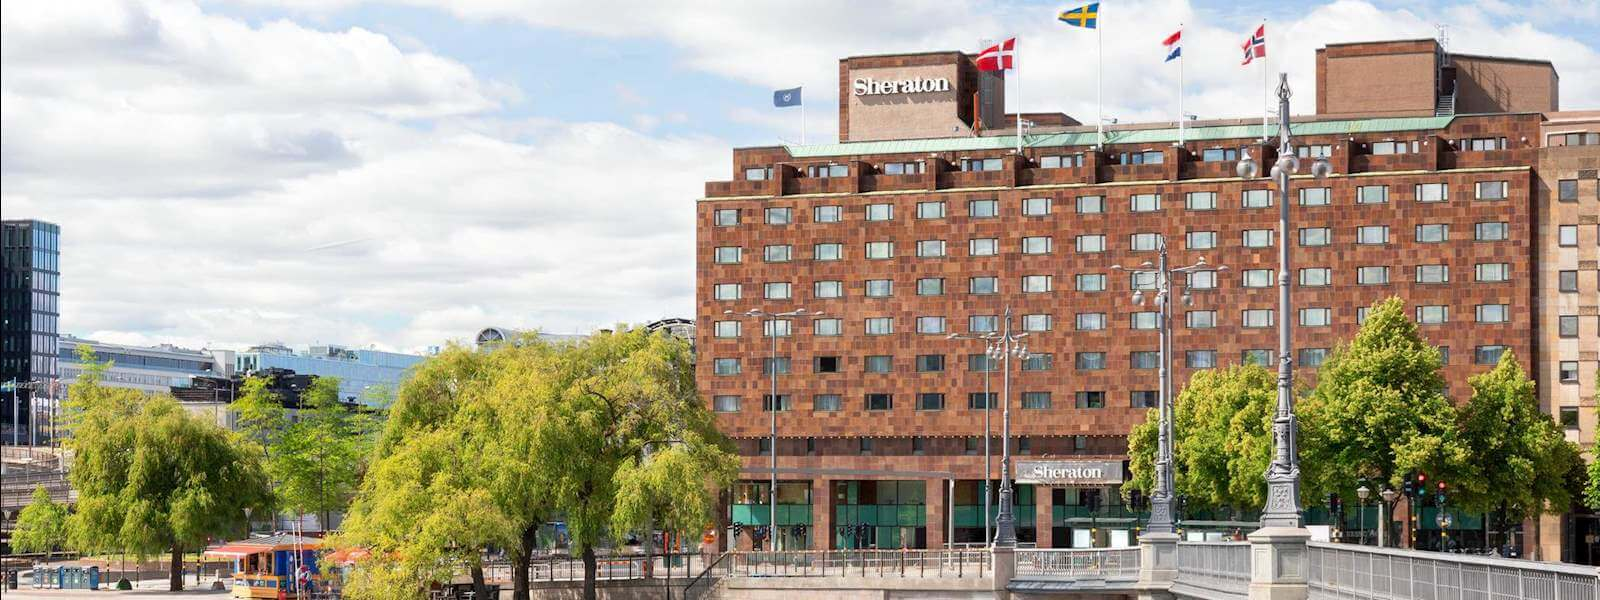 Website Accessibility - Sheraton [Stockholm] Hotel